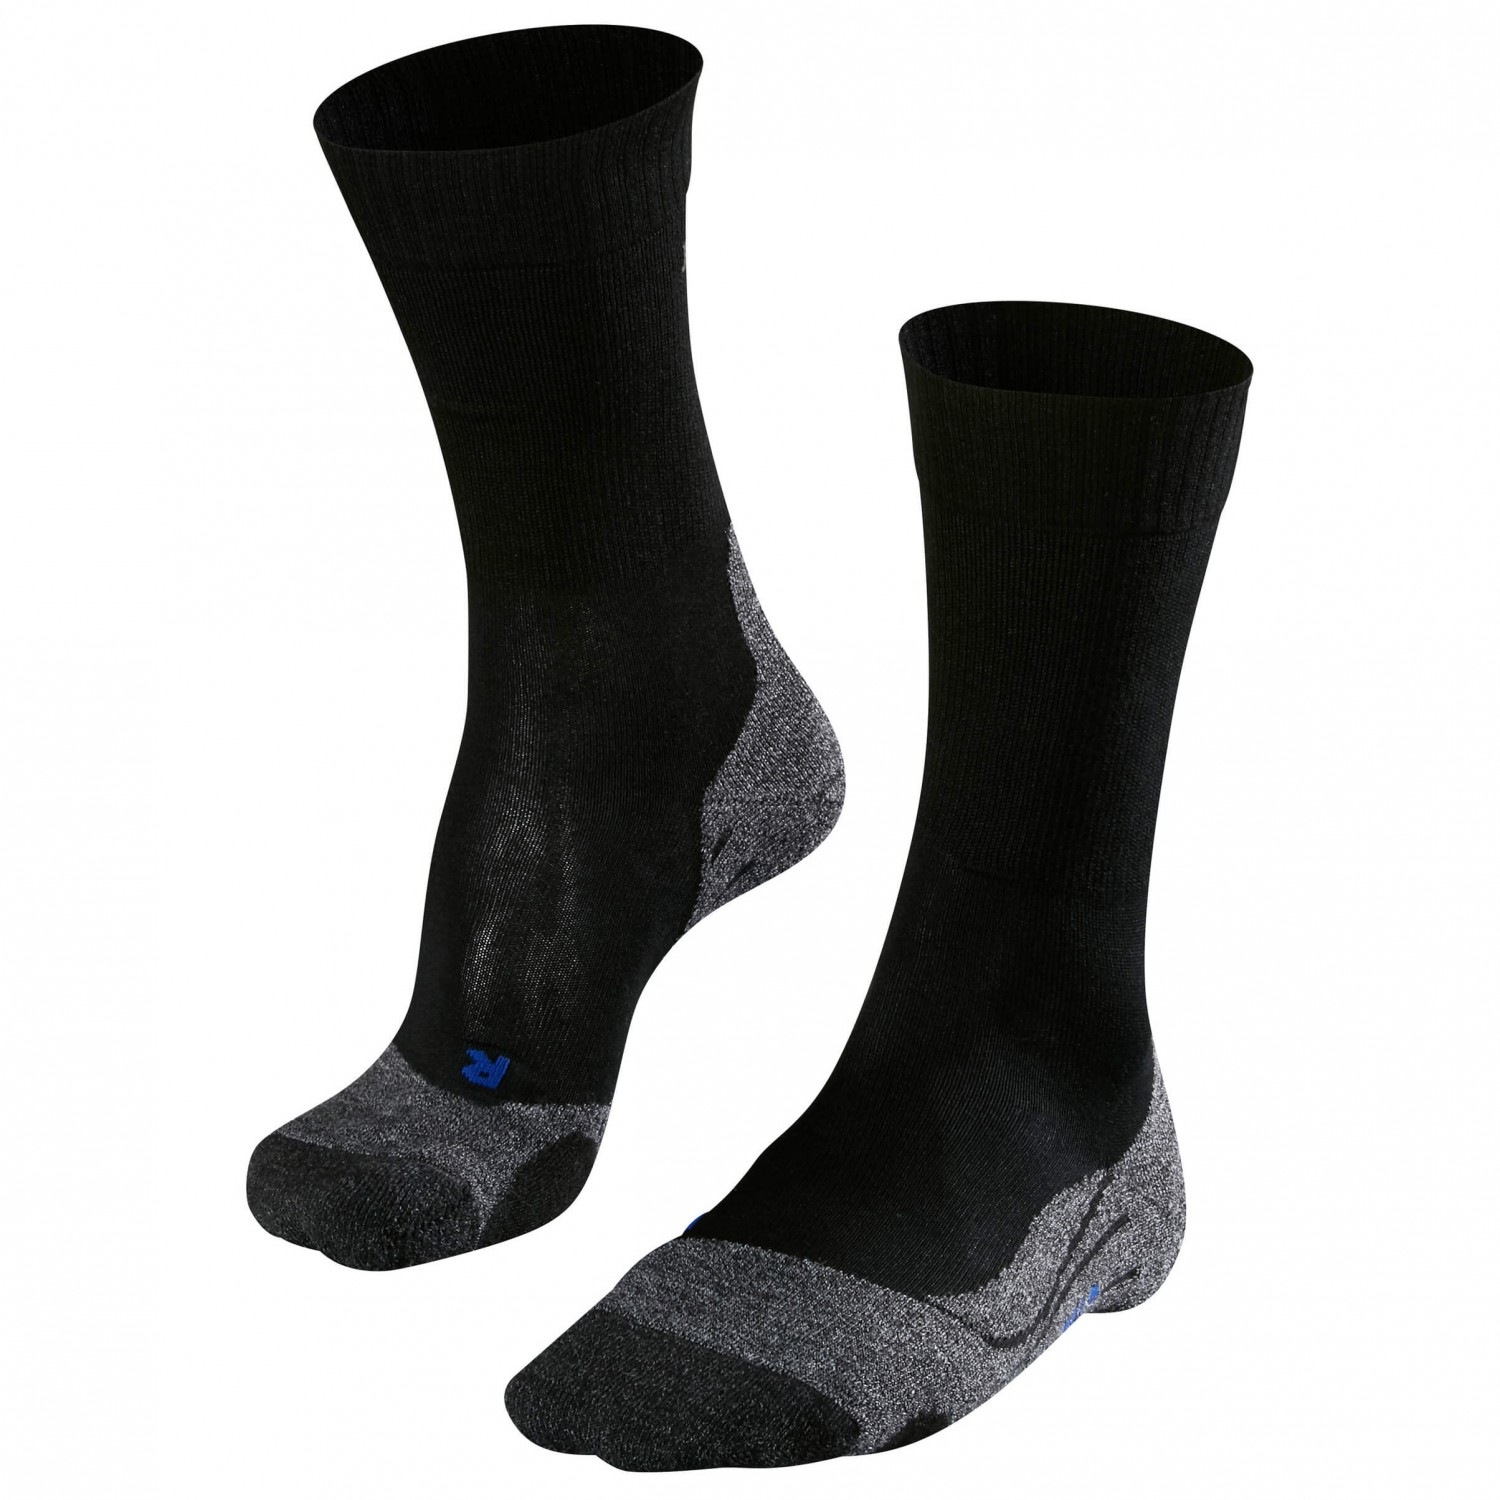 Falke - TK2 Cool - Trekkingsocken Ruby